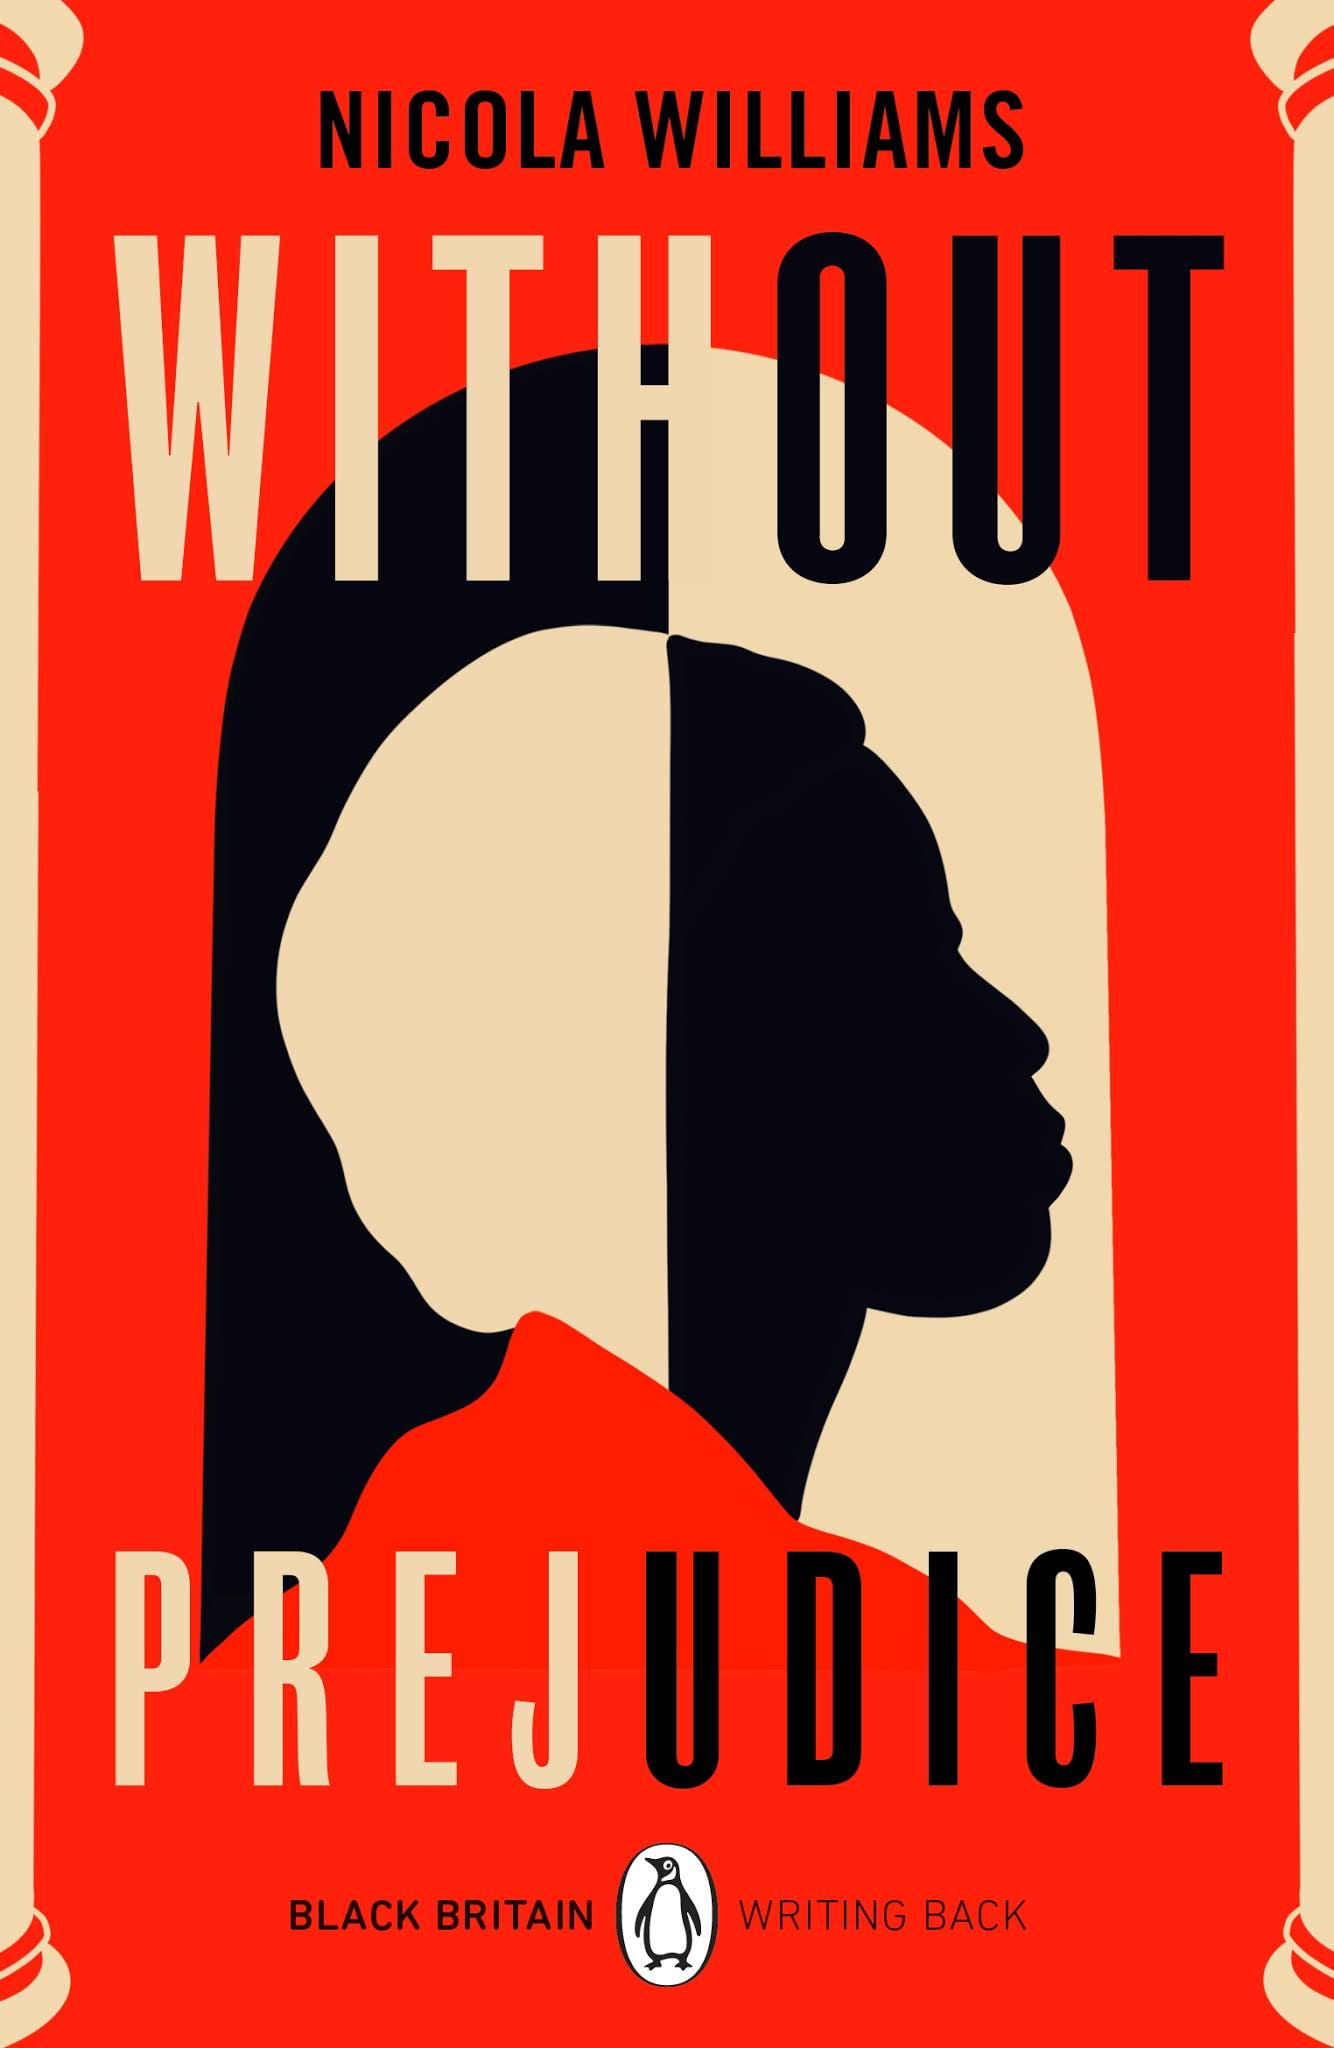 Book cover for Without Prejudice by Nicola Williams Without Prejudice in the South Manchester, Chorlton, Cheadle, Fallowfield, Burnage, Levenshulme, Heaton Moor, Heaton Mersey, Heaton Norris, Heaton Chapel, Northenden, and Didsbury book group